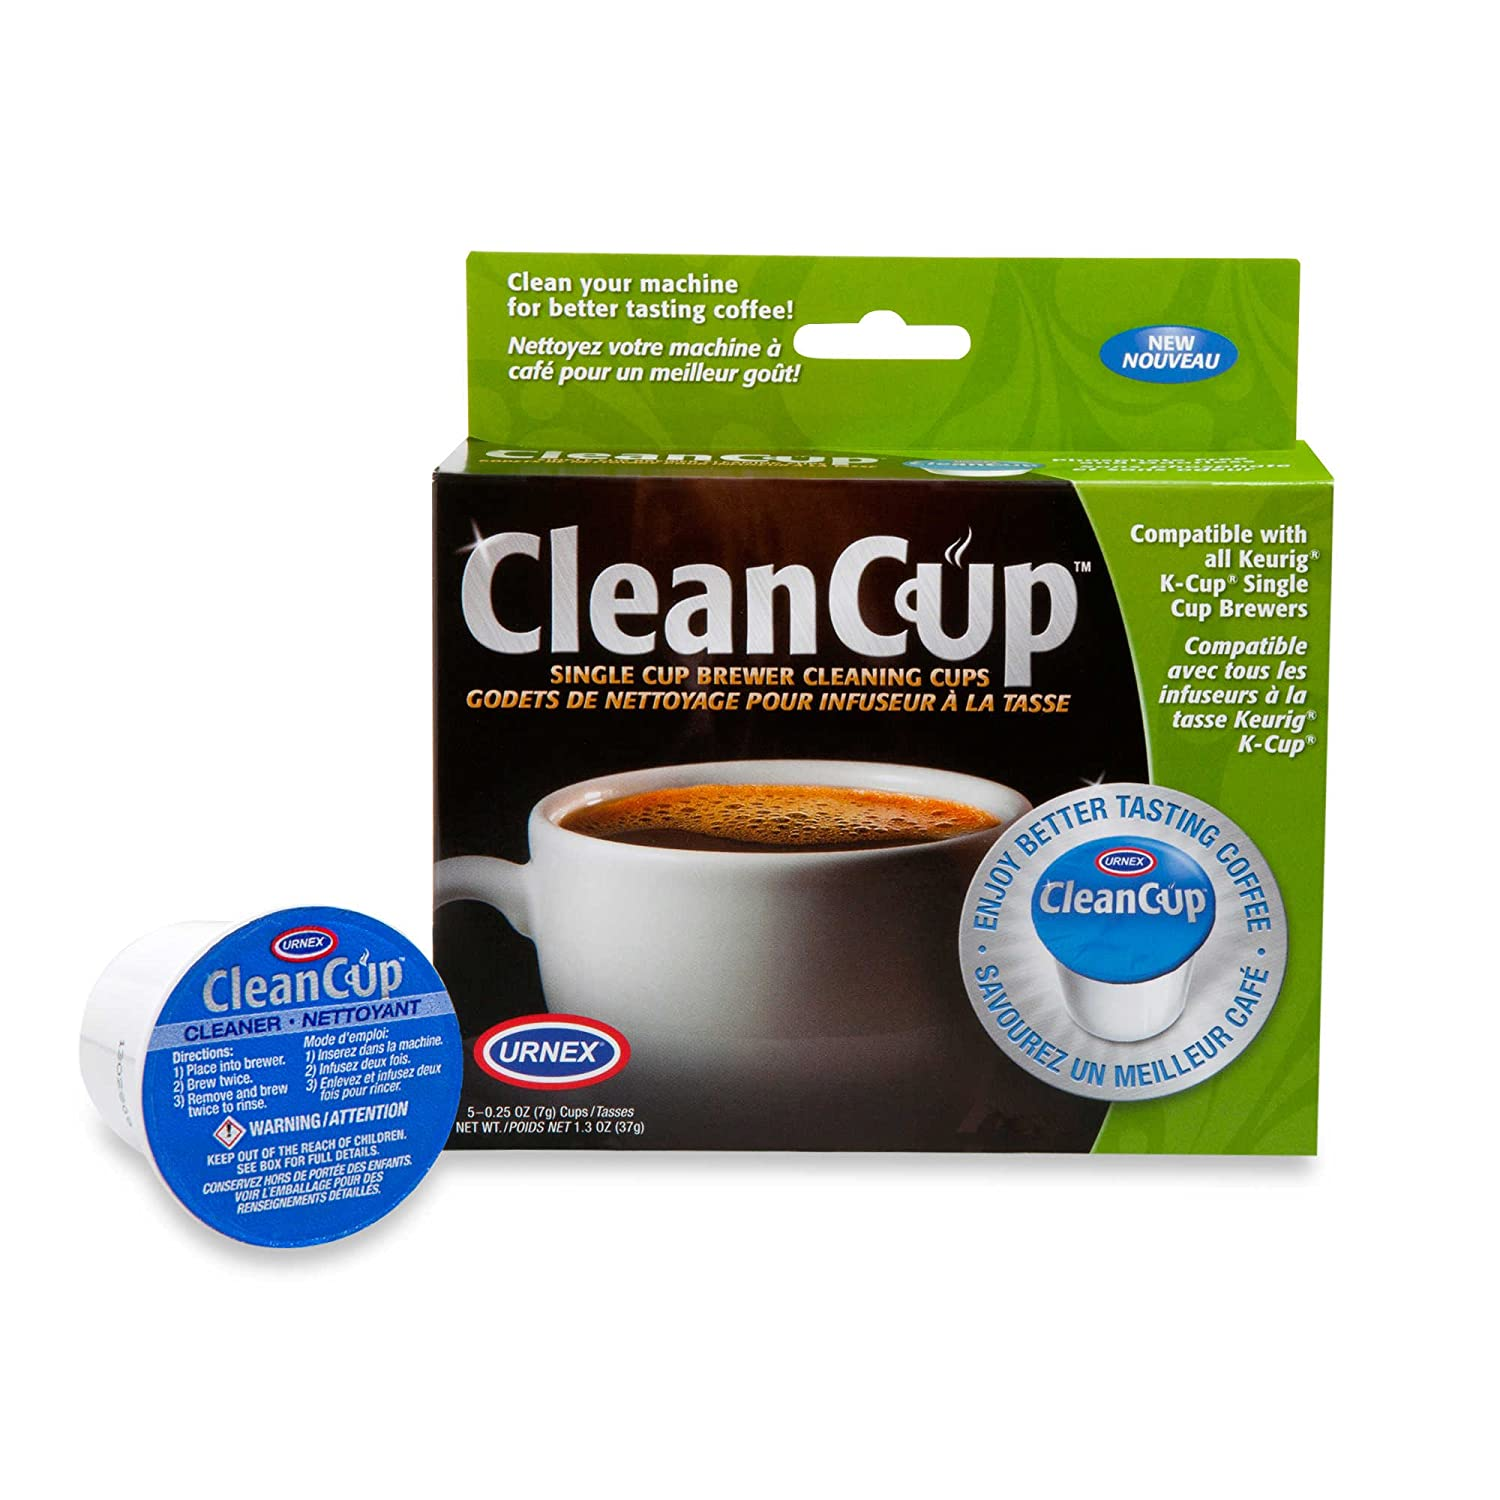 Urnex 5-Count CleanCup Single Brewer Cleaning Cups